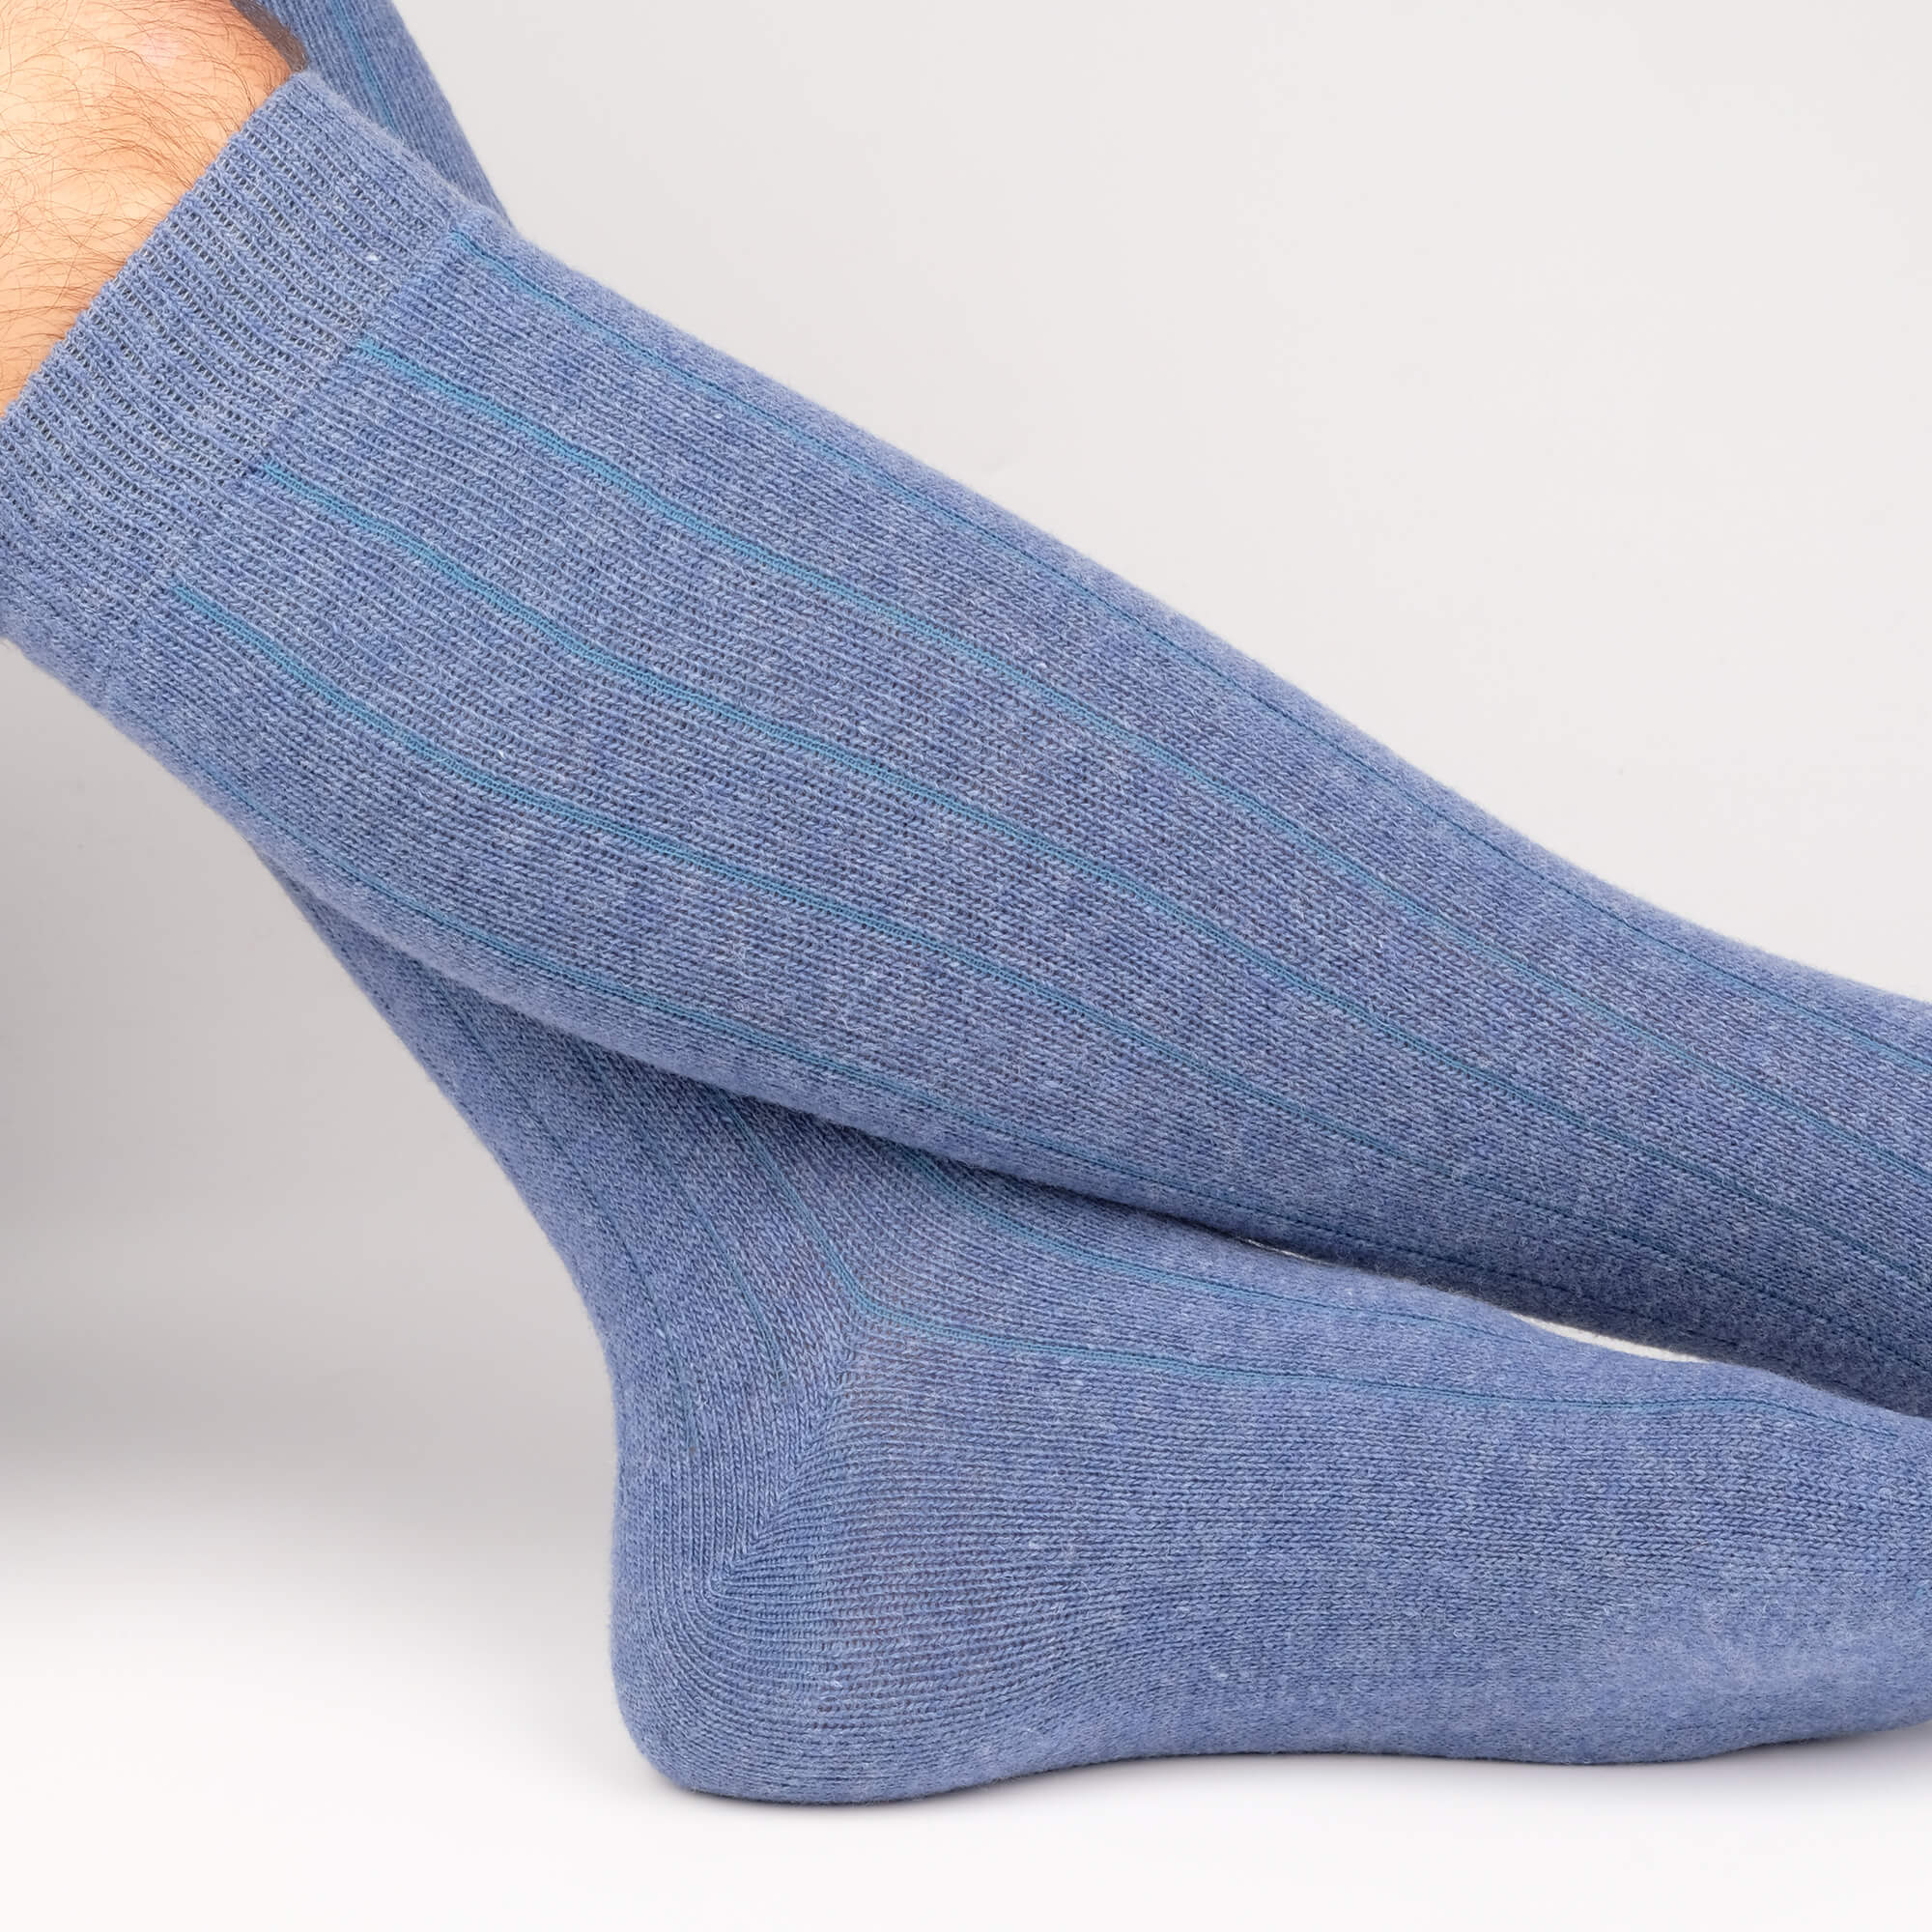 c6b85a411 Men s Cashmere Knee High Sock Blue - made in Italy⎪Etiquette Clothiers